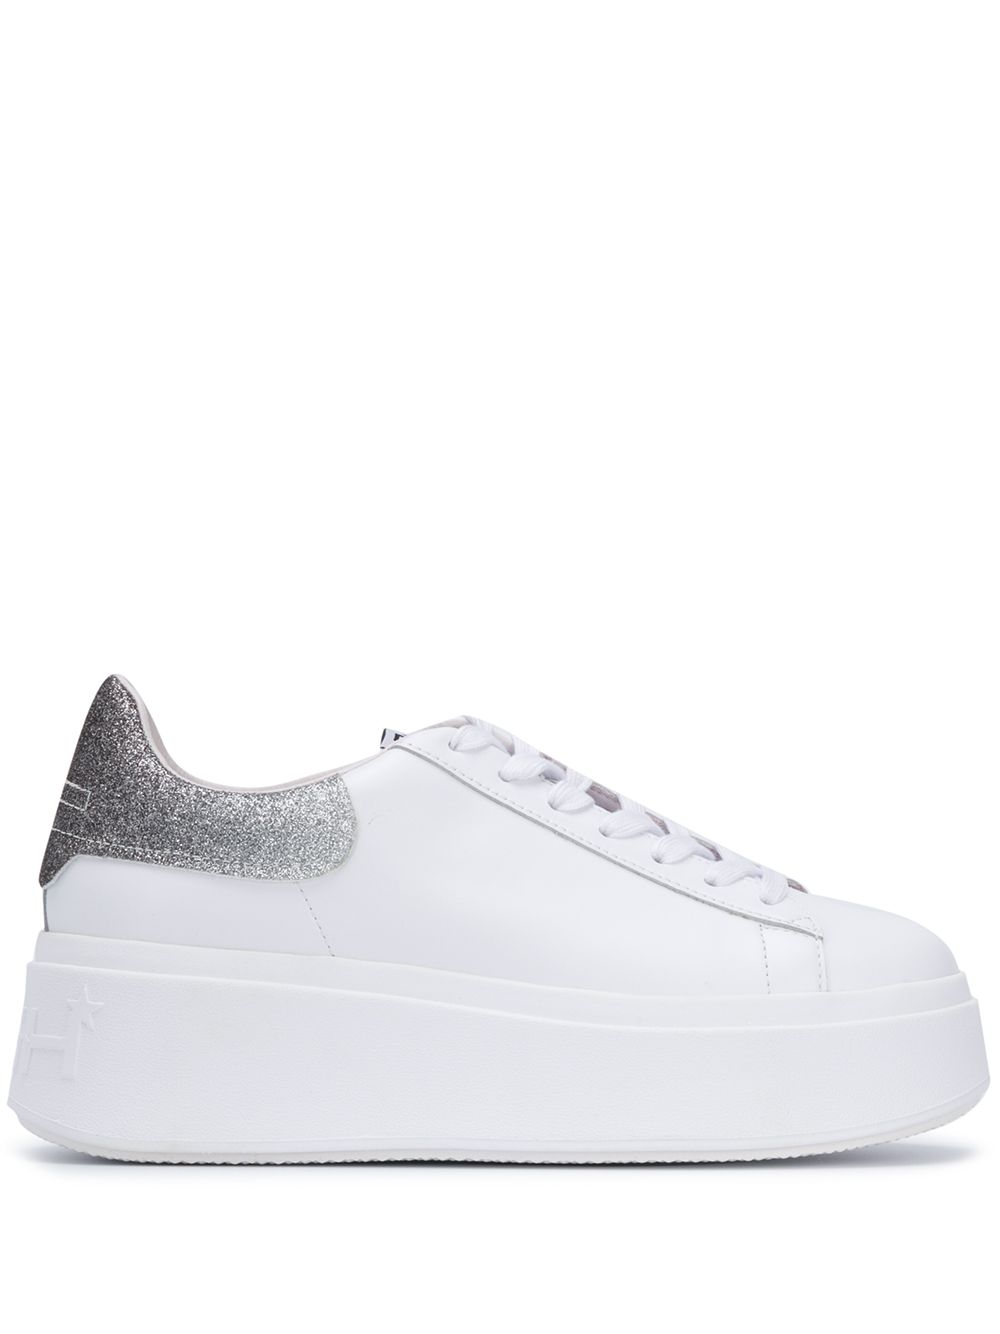 Moby Glittered Sneakers